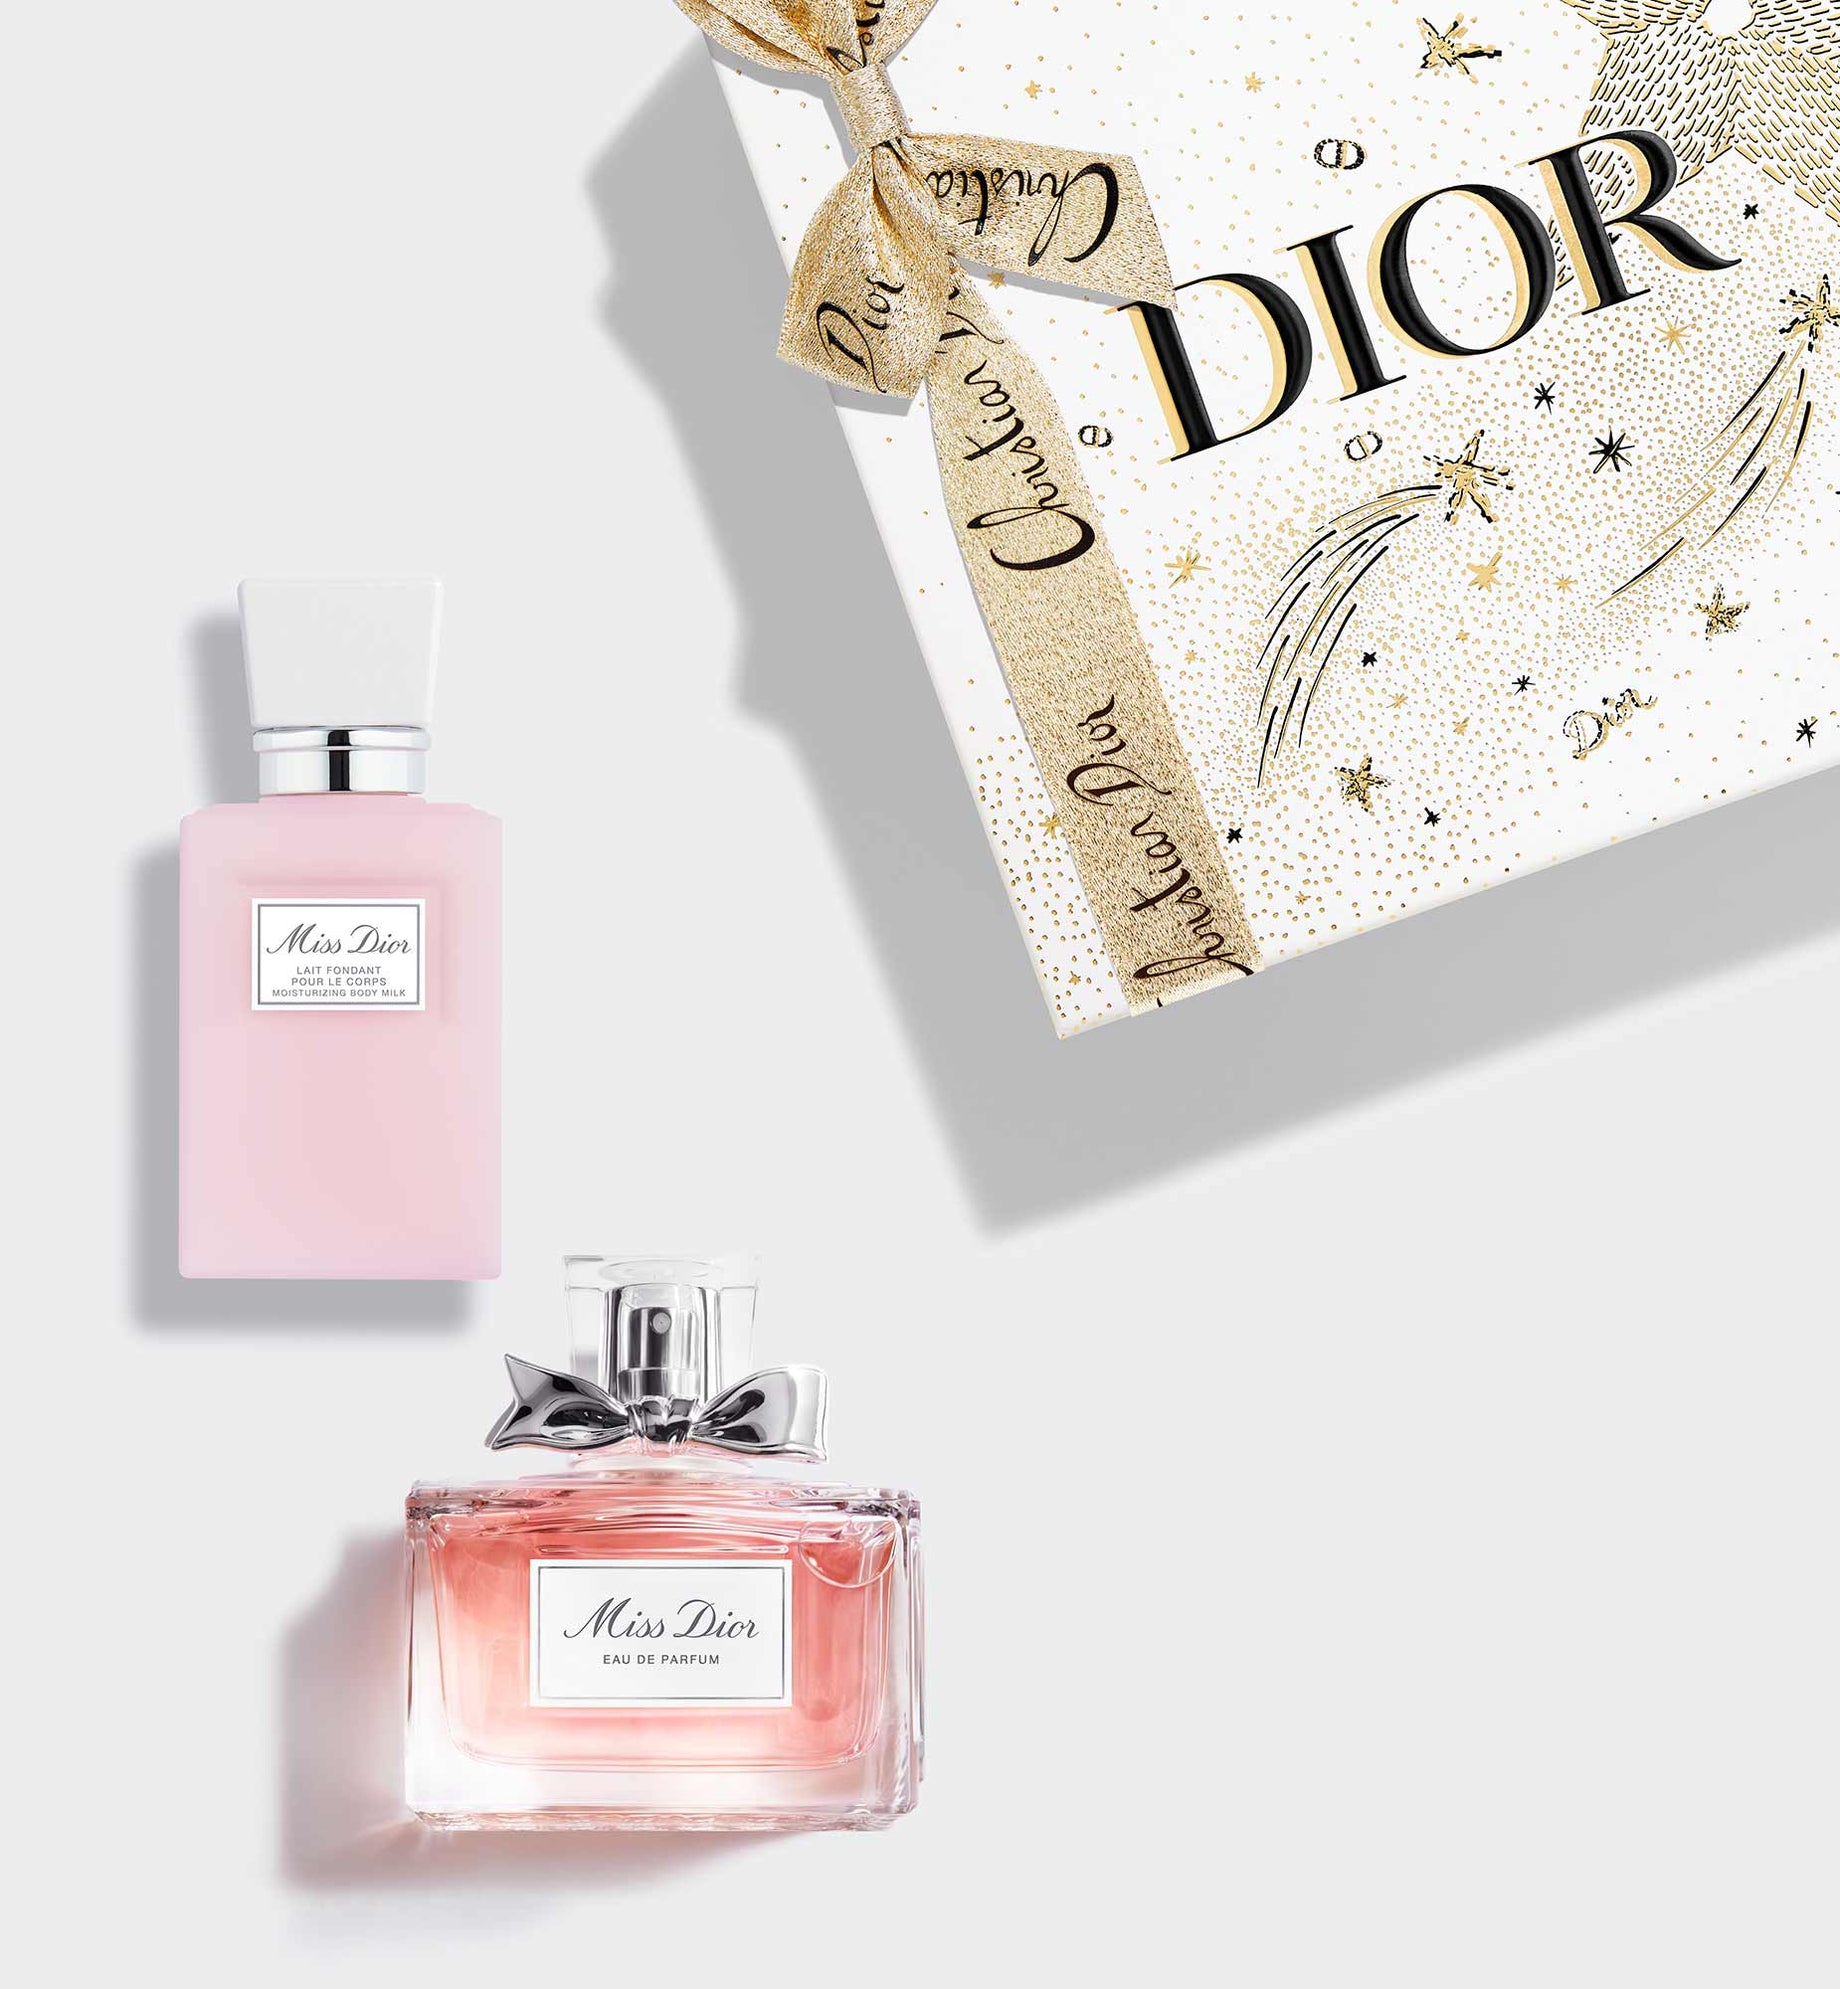 MISS DIOR FRAGRANCE SET - Eau de Parfum and Moisturizing Body Milk